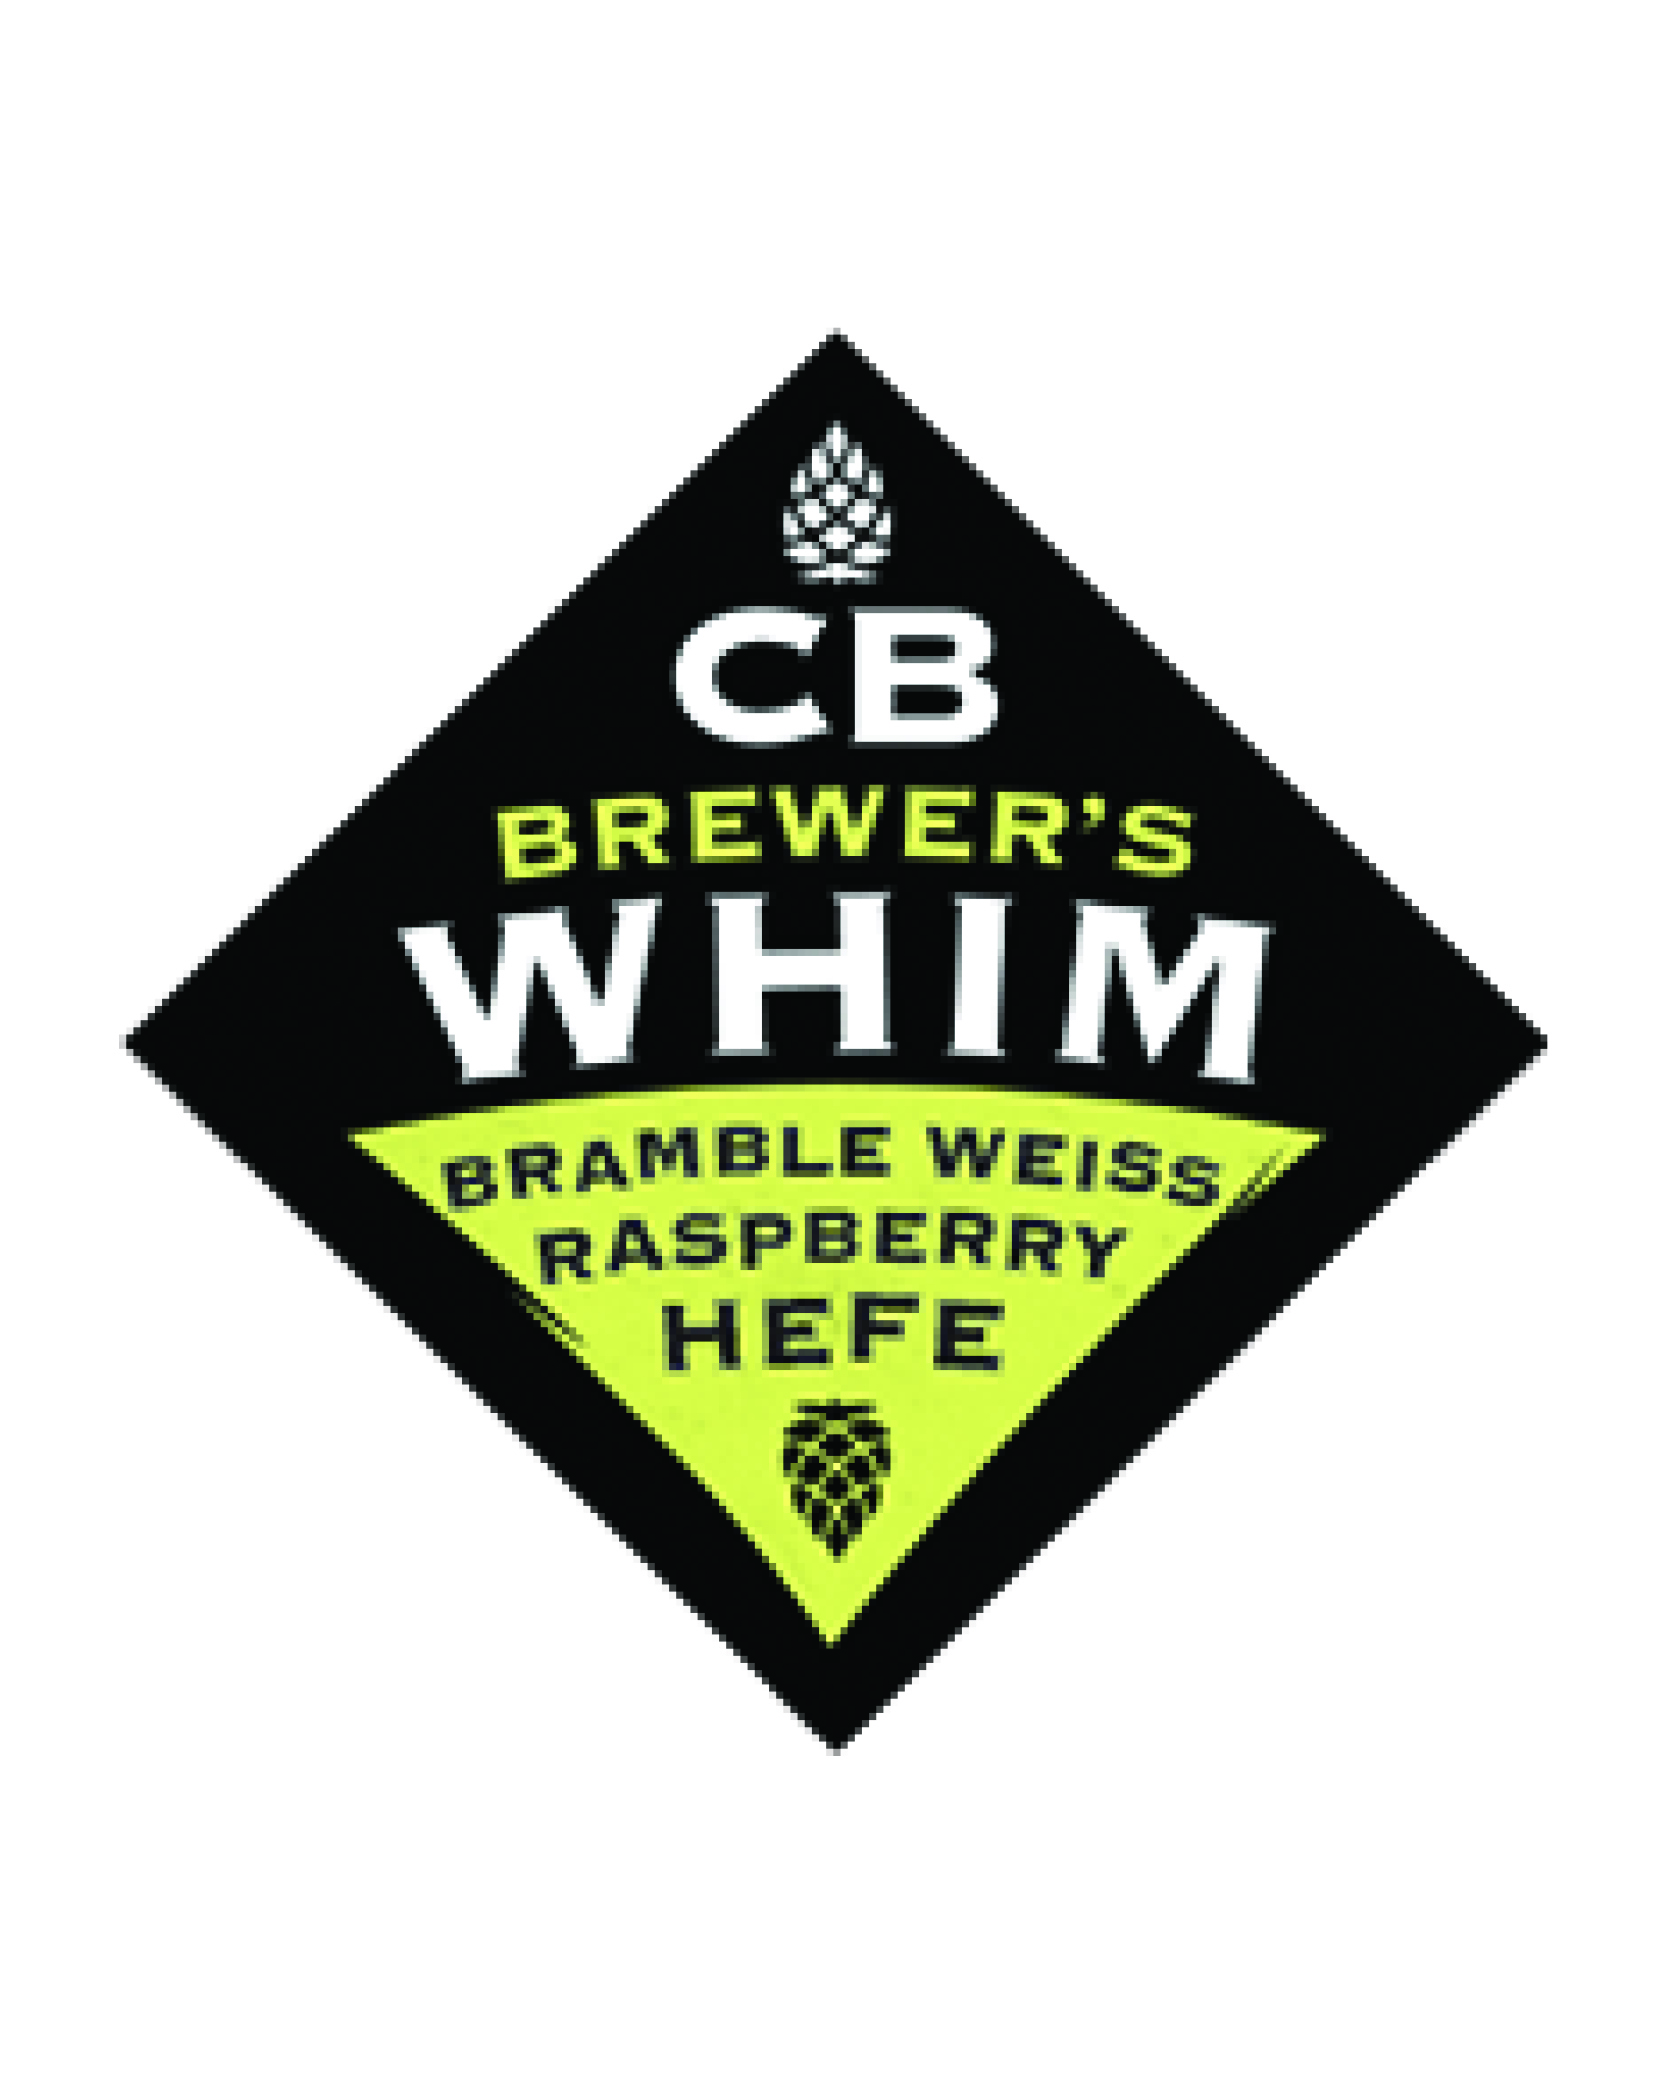 Craft Brewers Brewer's Whim Bramble Weiss Raspberry Hefeweizen